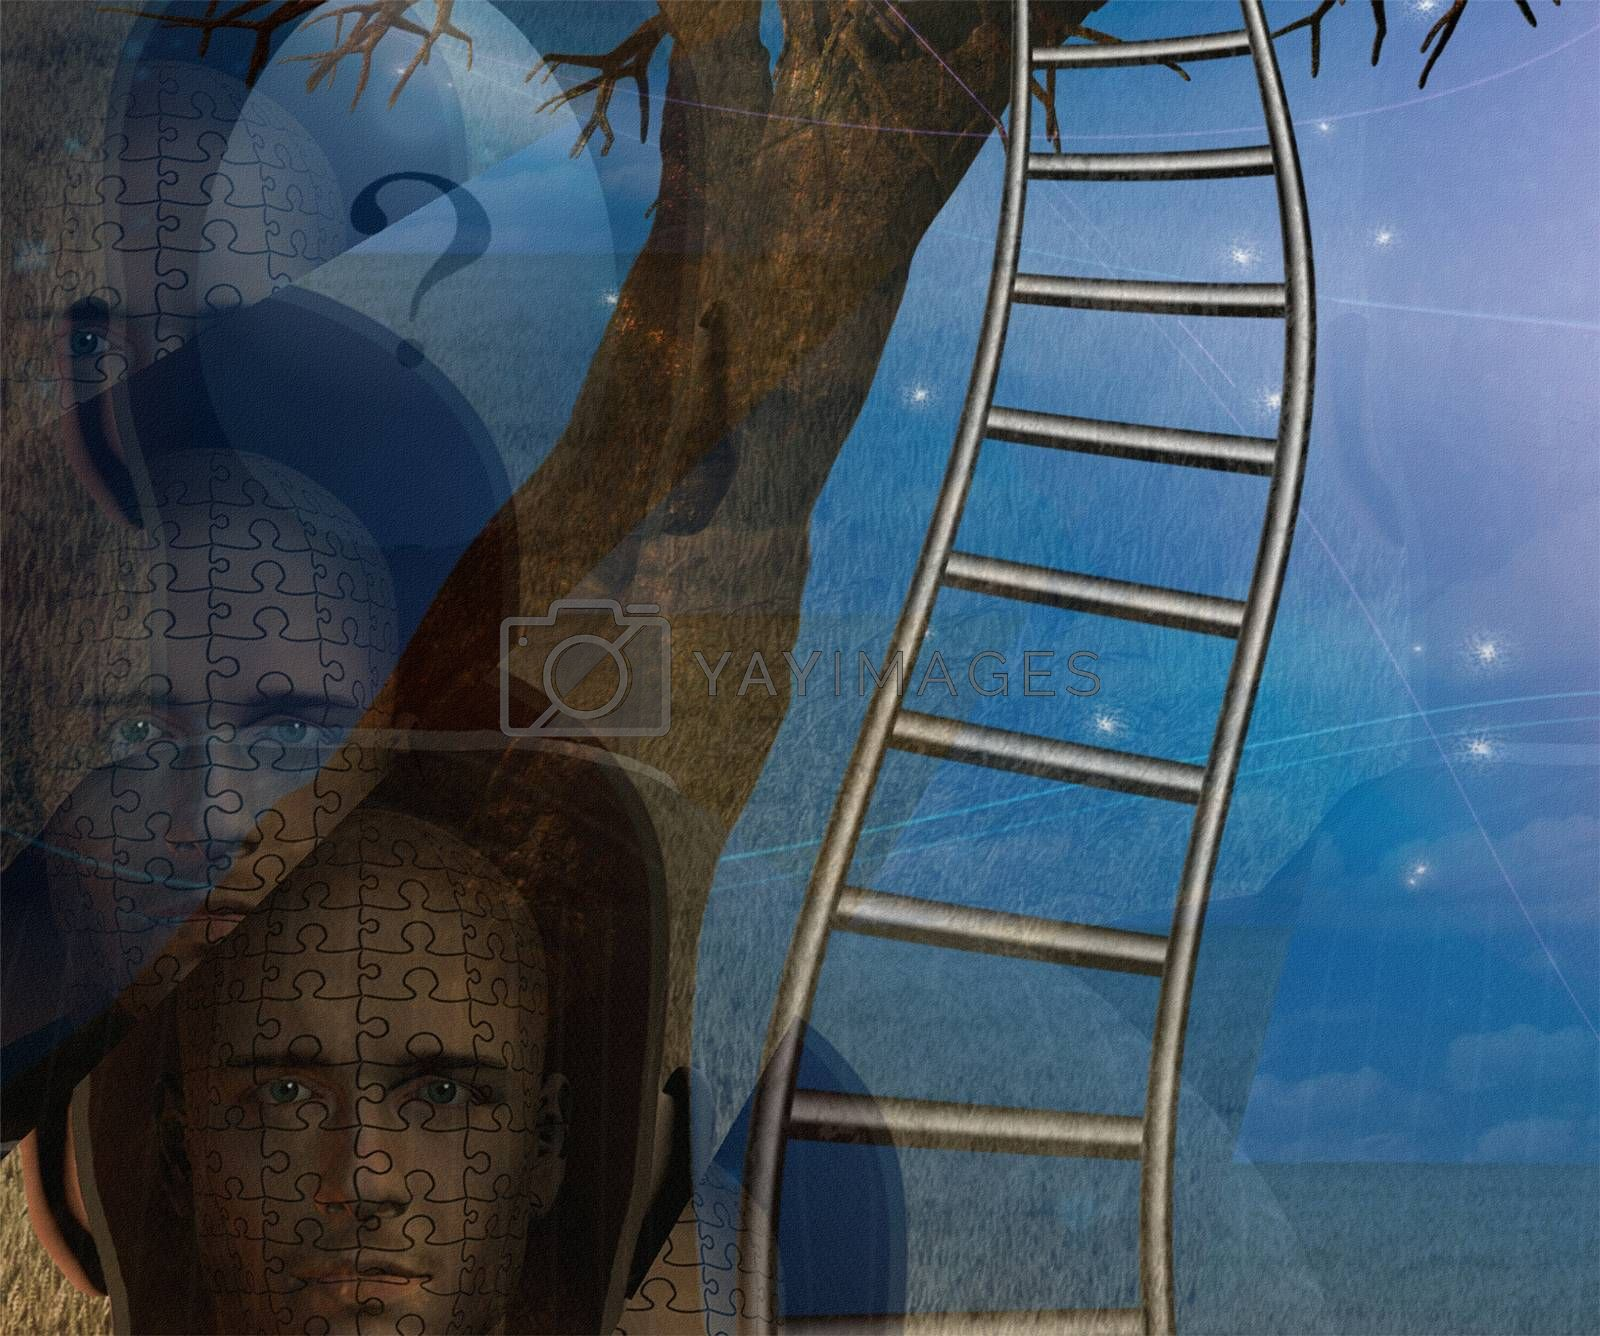 Human faces and twisted ladder. 3D rendering